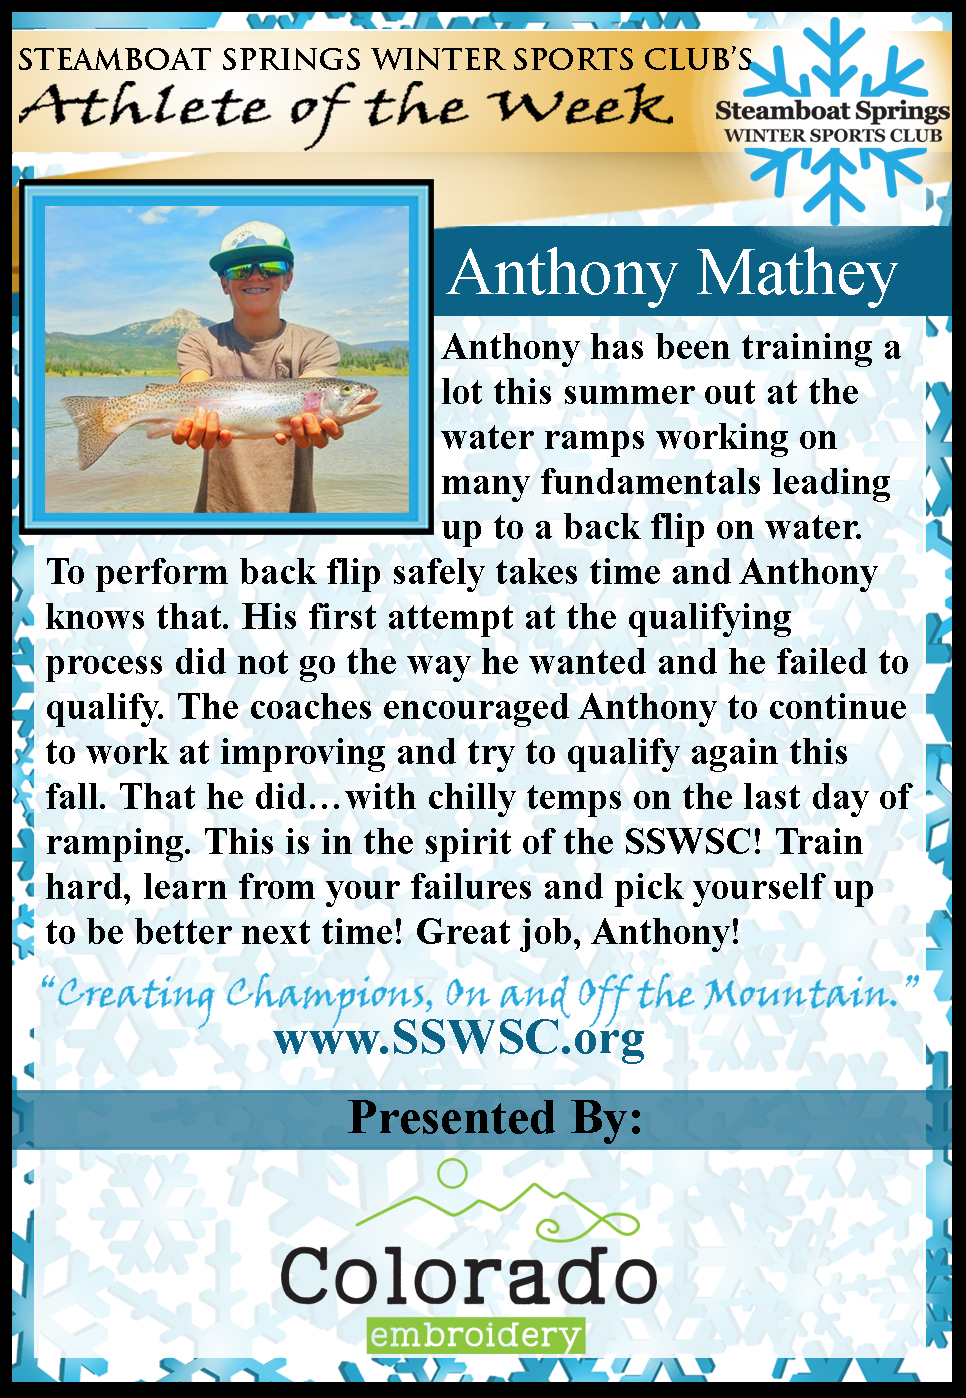 Athlete of the week Anthony Mathey